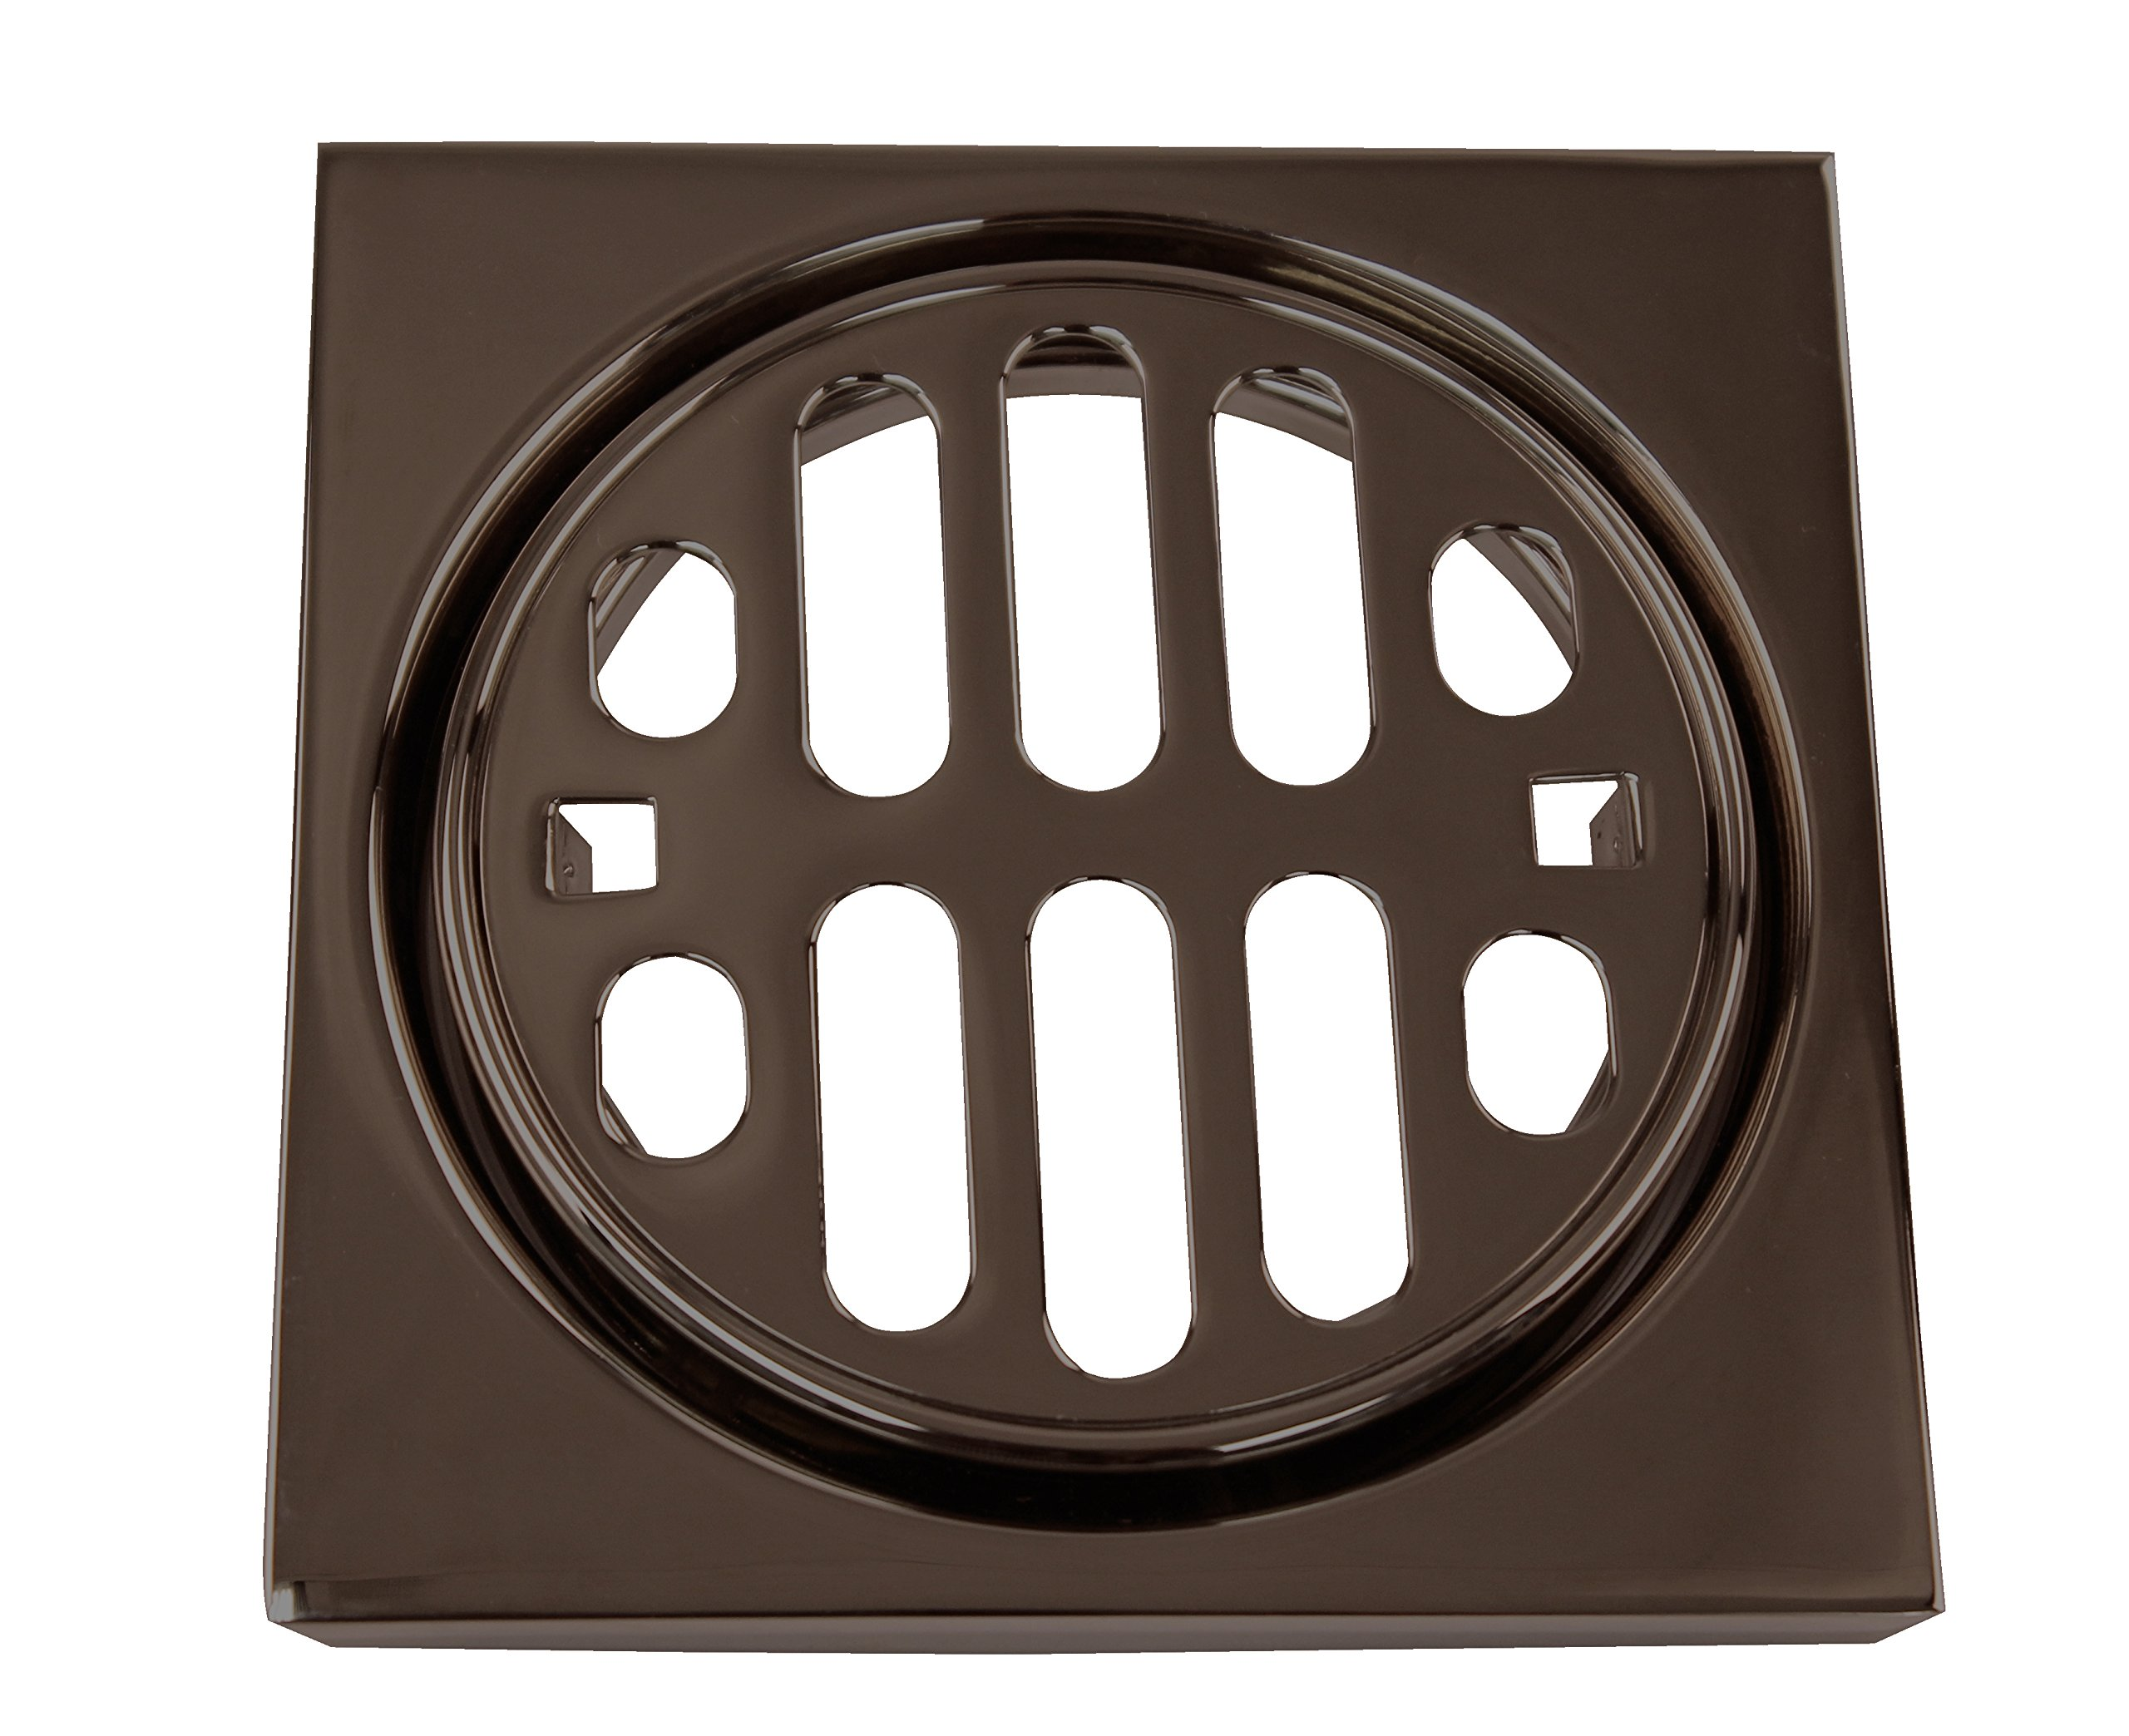 Westbrass Frank Pattern Snap-In Shower Strainer Grill, Square & Crown, Oil Rubbed Bronze, D3171-12